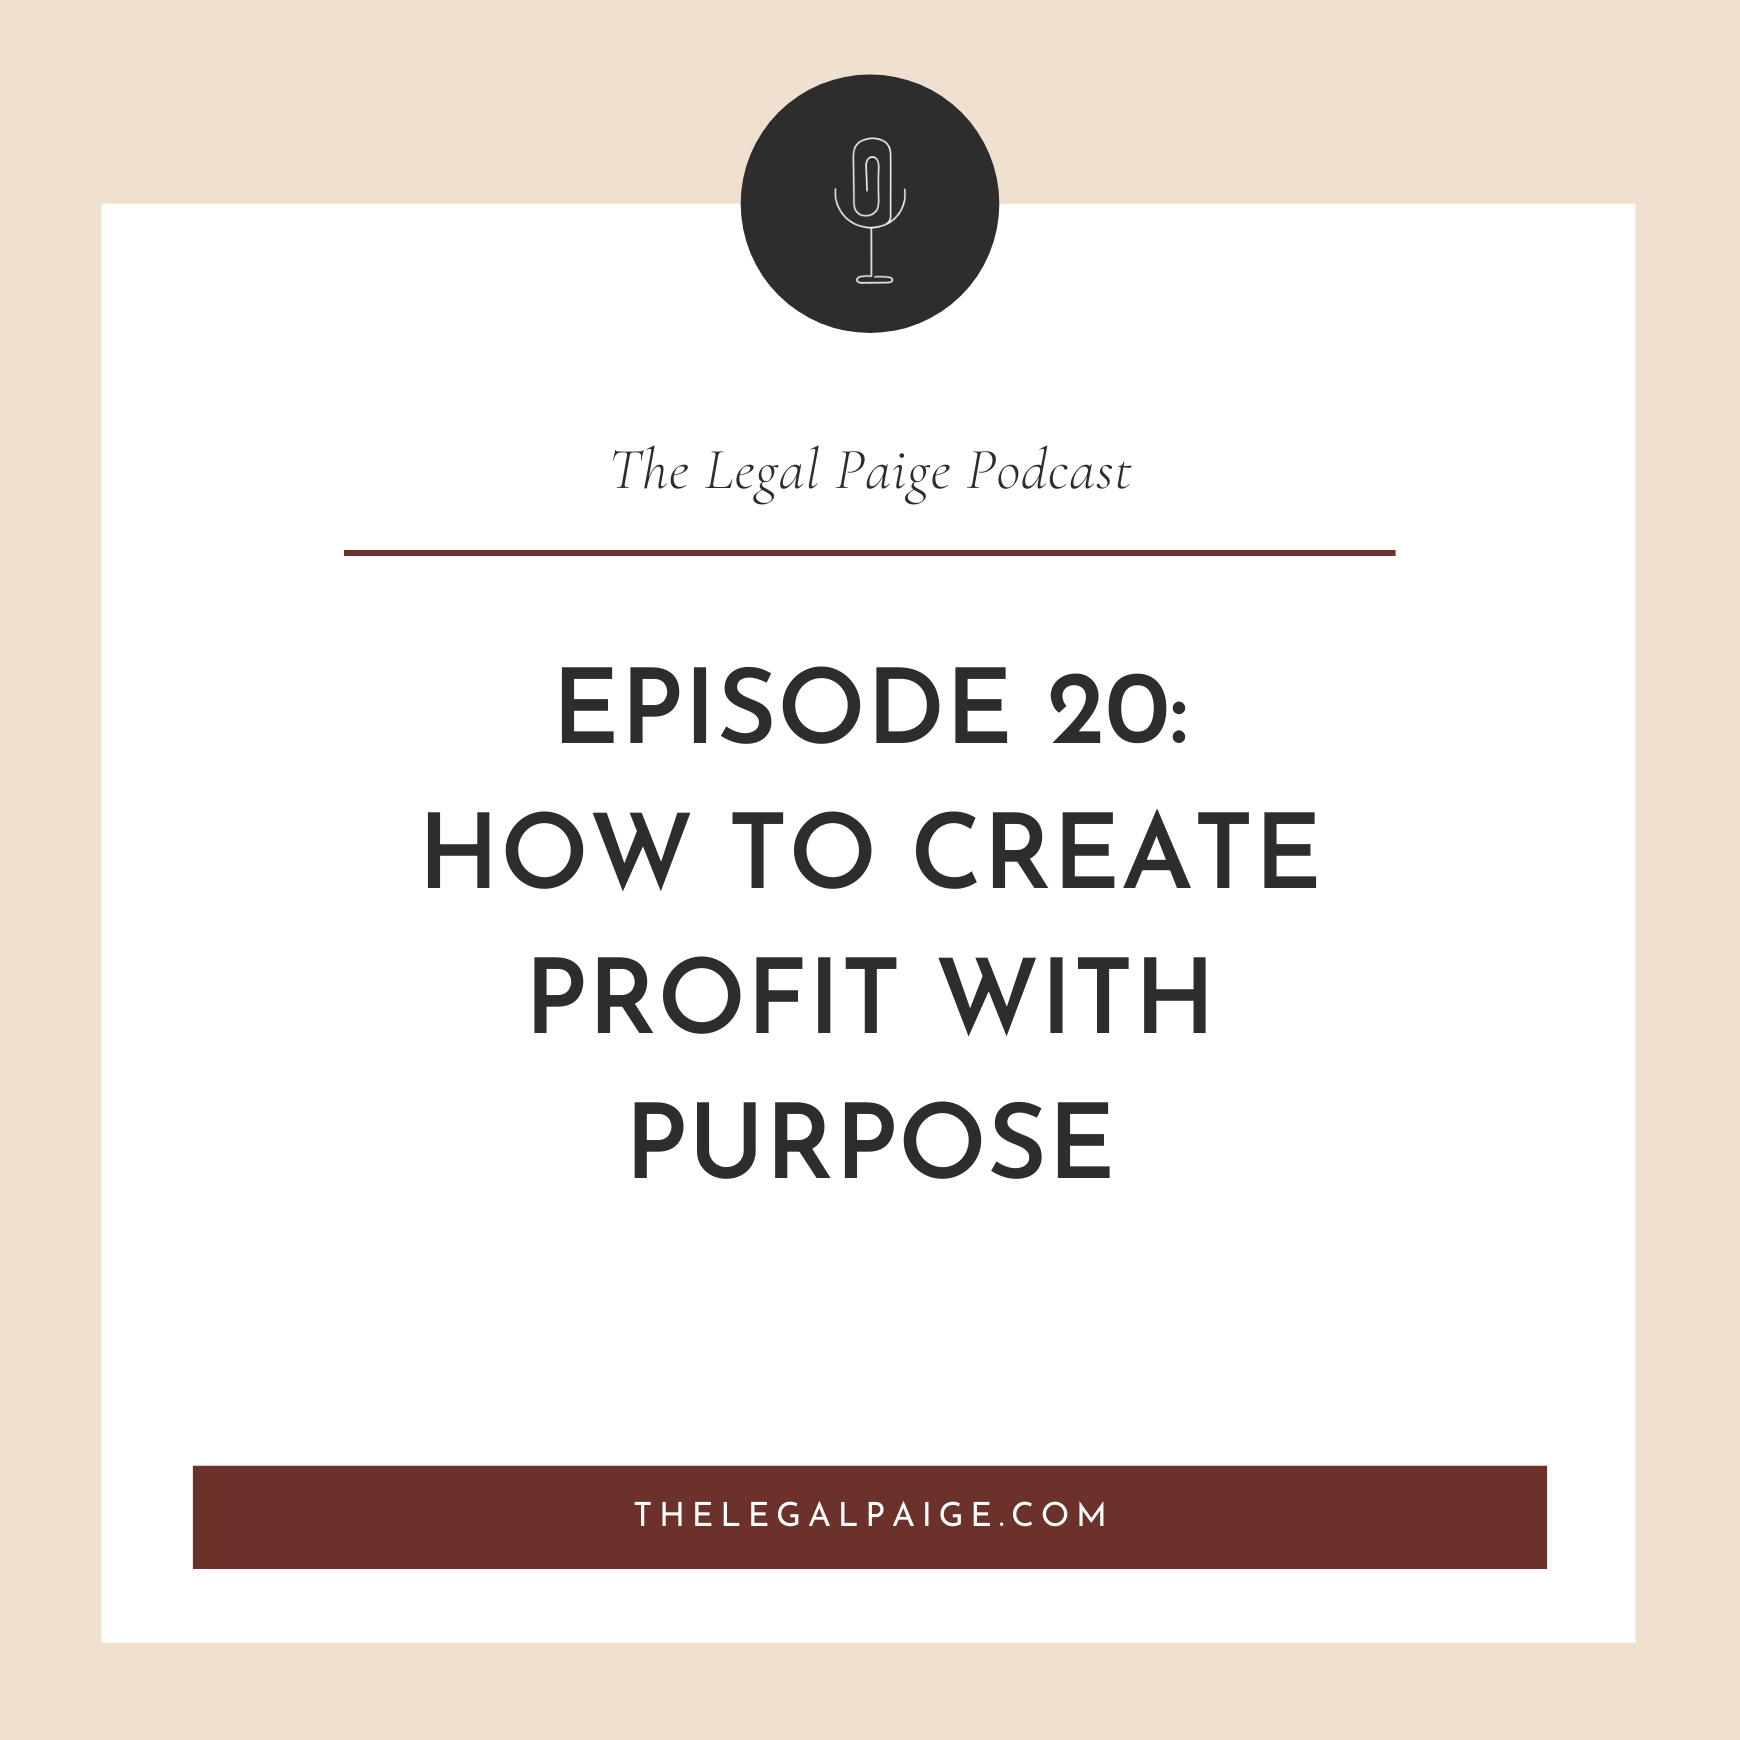 Ep: 20 How to create profit with purpose